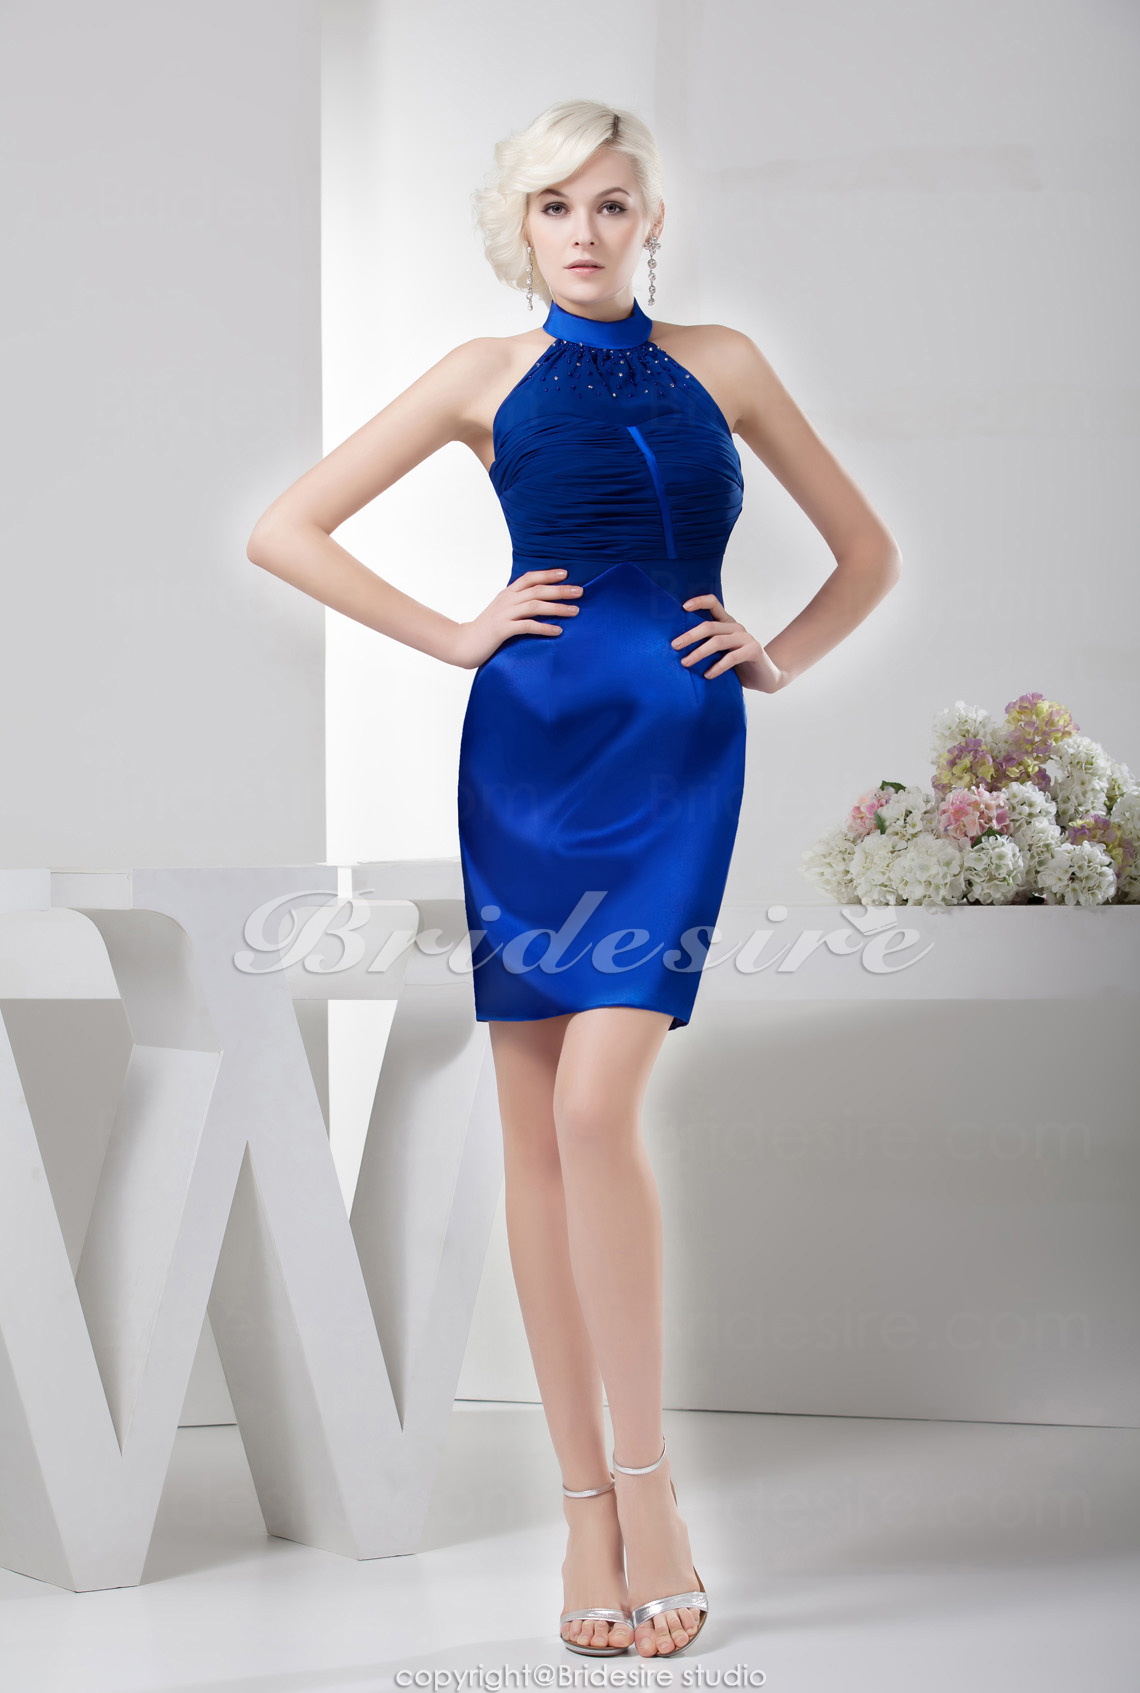 Sheath/Column High Neck Knee-length Sleeveless Satin Dress